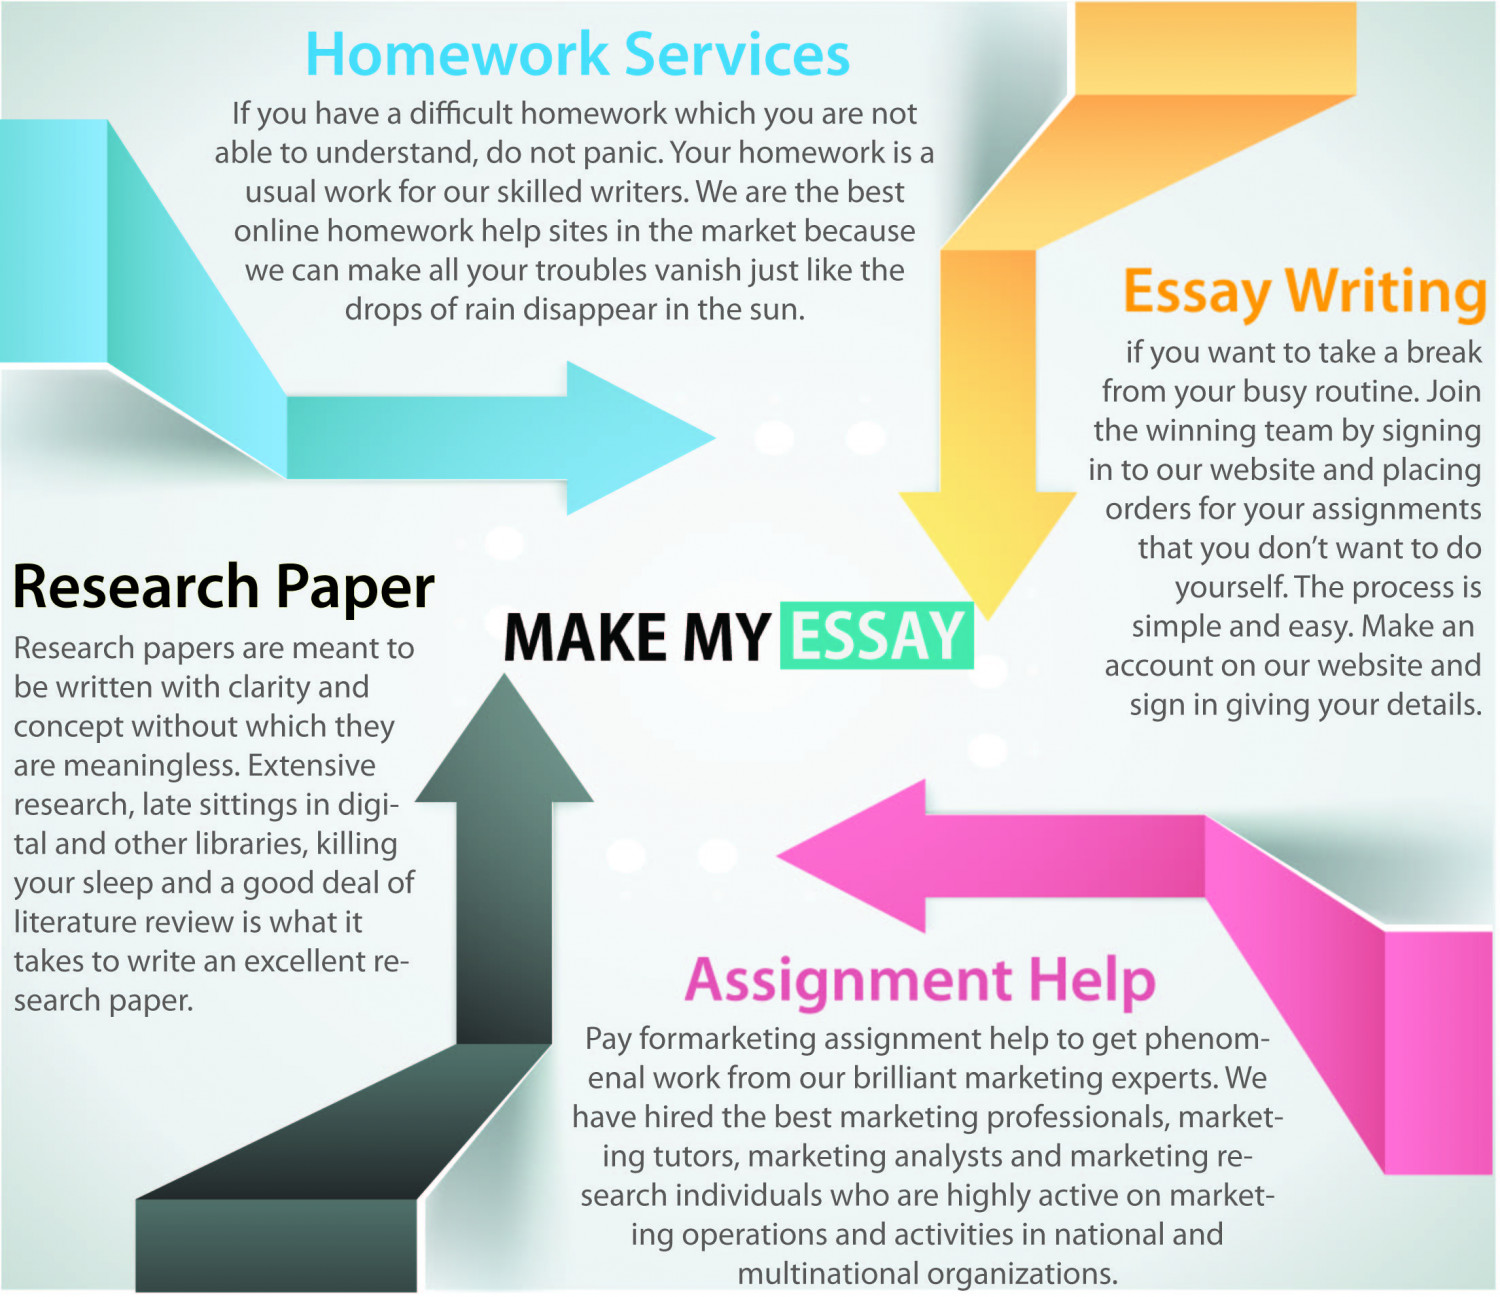 online writing paper writing paper online write my paper for essay  write my paper for essay benefit of watching television write my research paper cheap write my